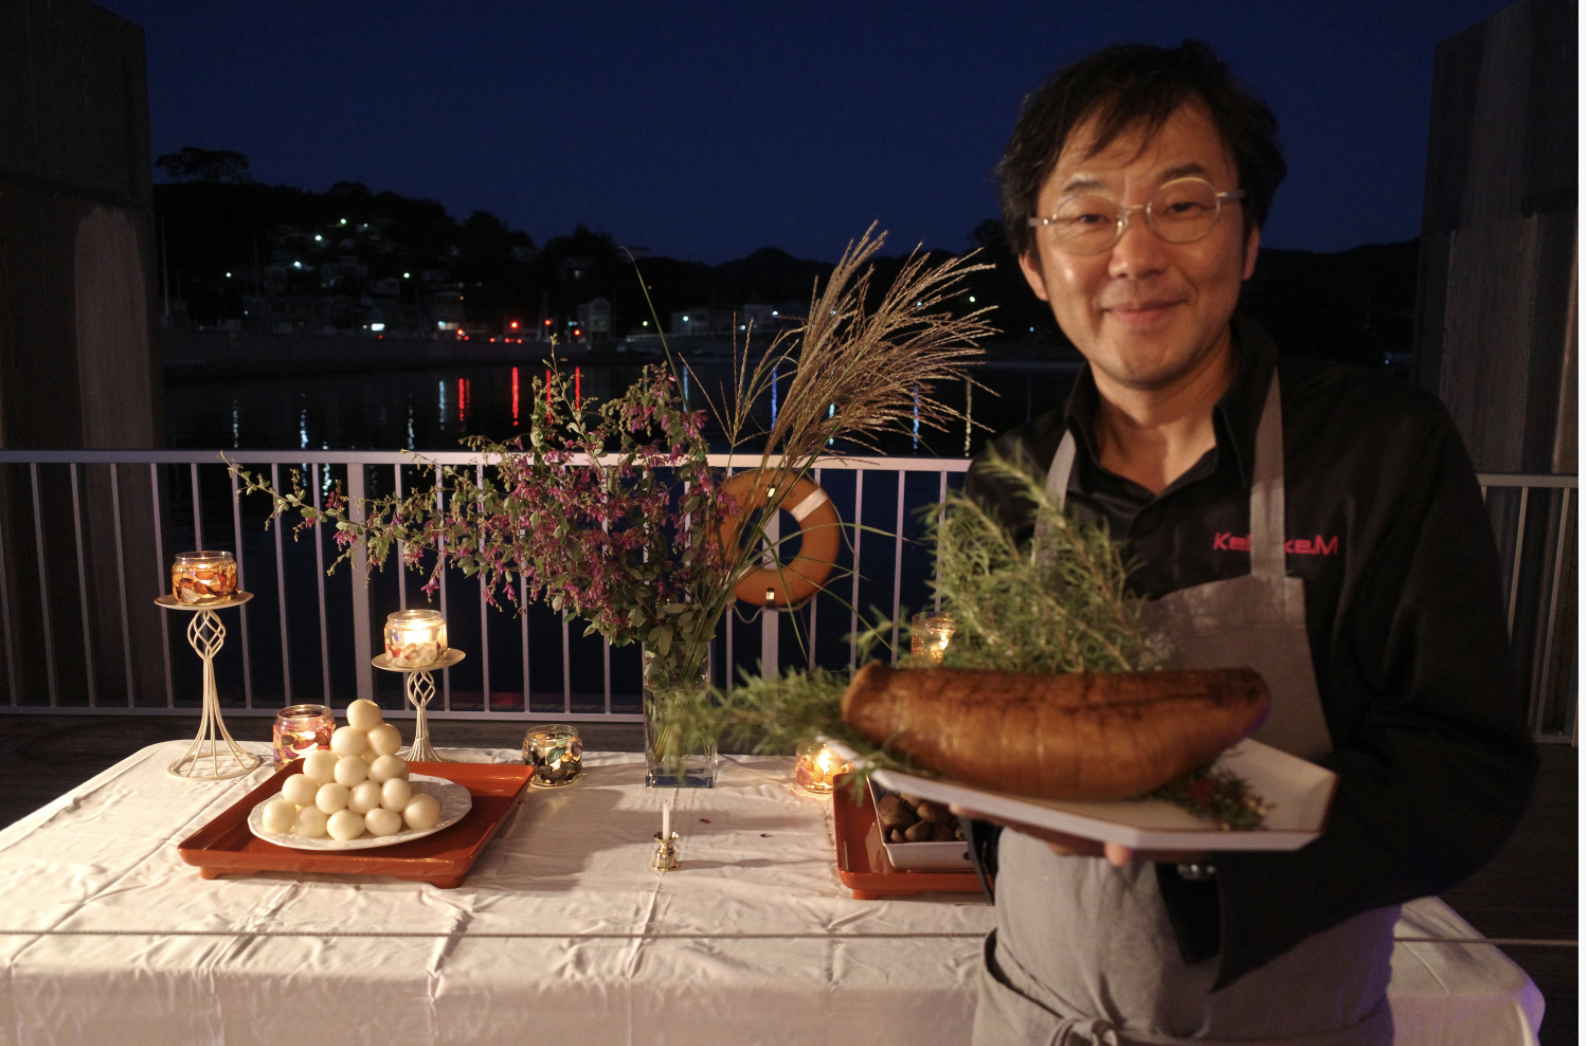 Chef Keisuke Matsumoto, former executive chef of Lewin Terrace in Singapore